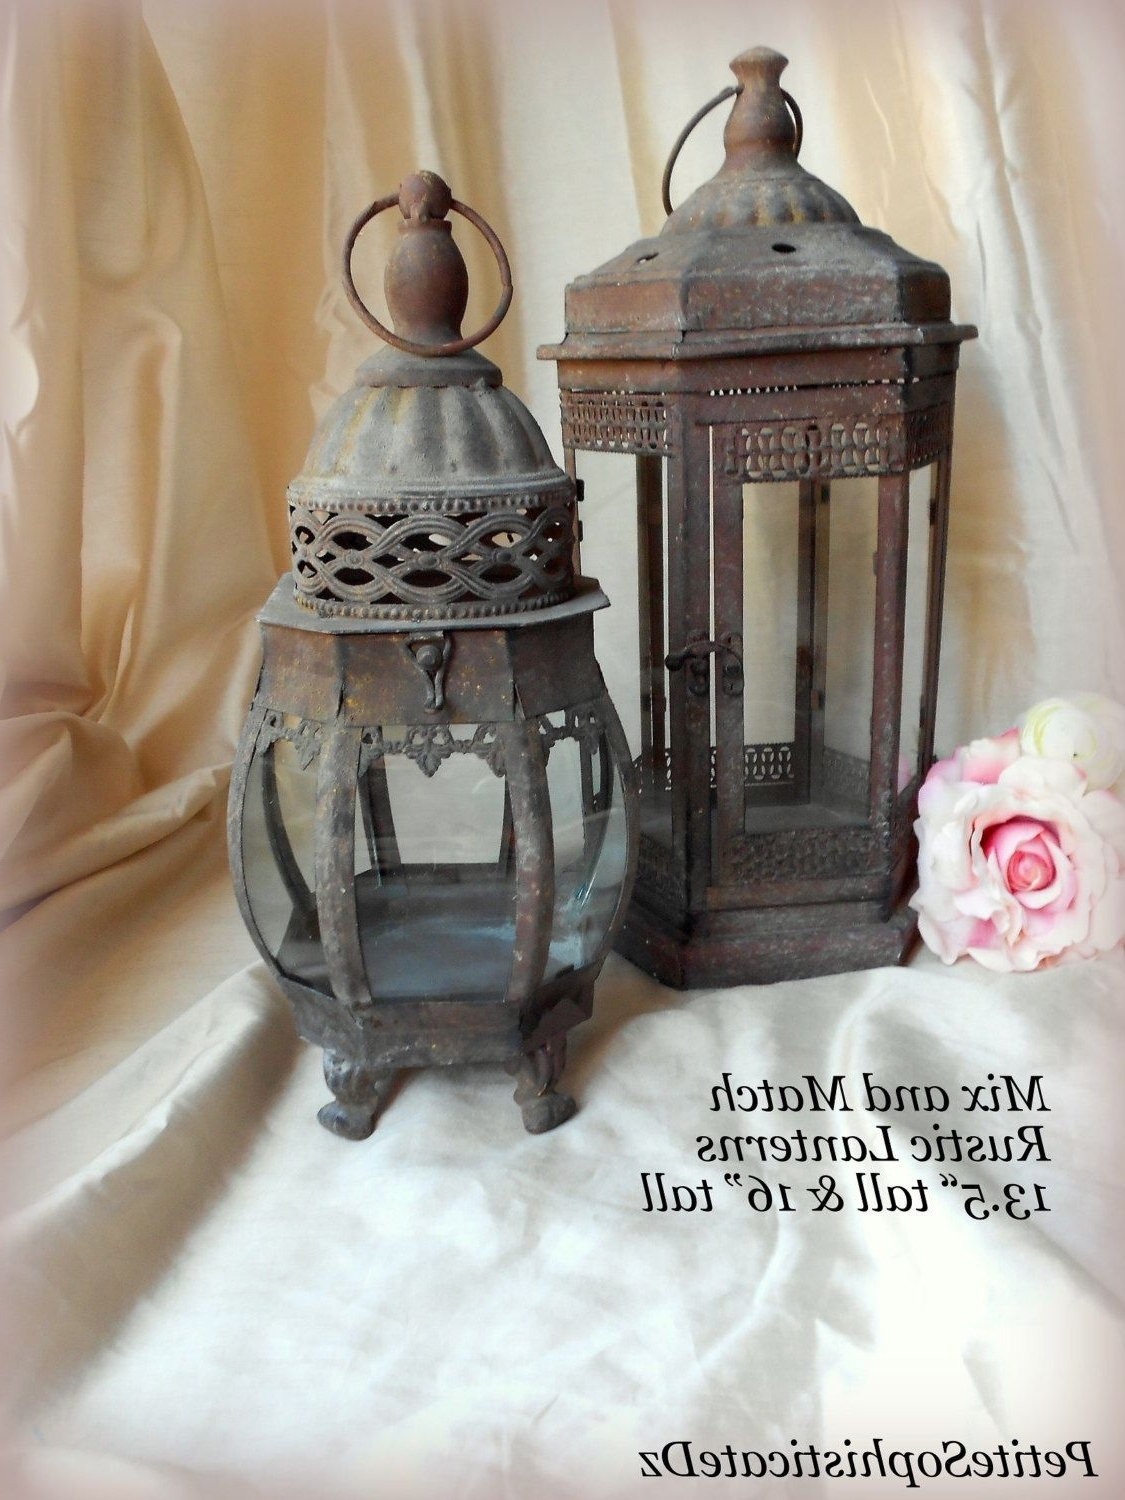 Fashionable Sale Mix & Match Rustic Lanterns,indoor/outdoor Rustic Centerpiece Inside Etsy Outdoor Lanterns (View 13 of 20)